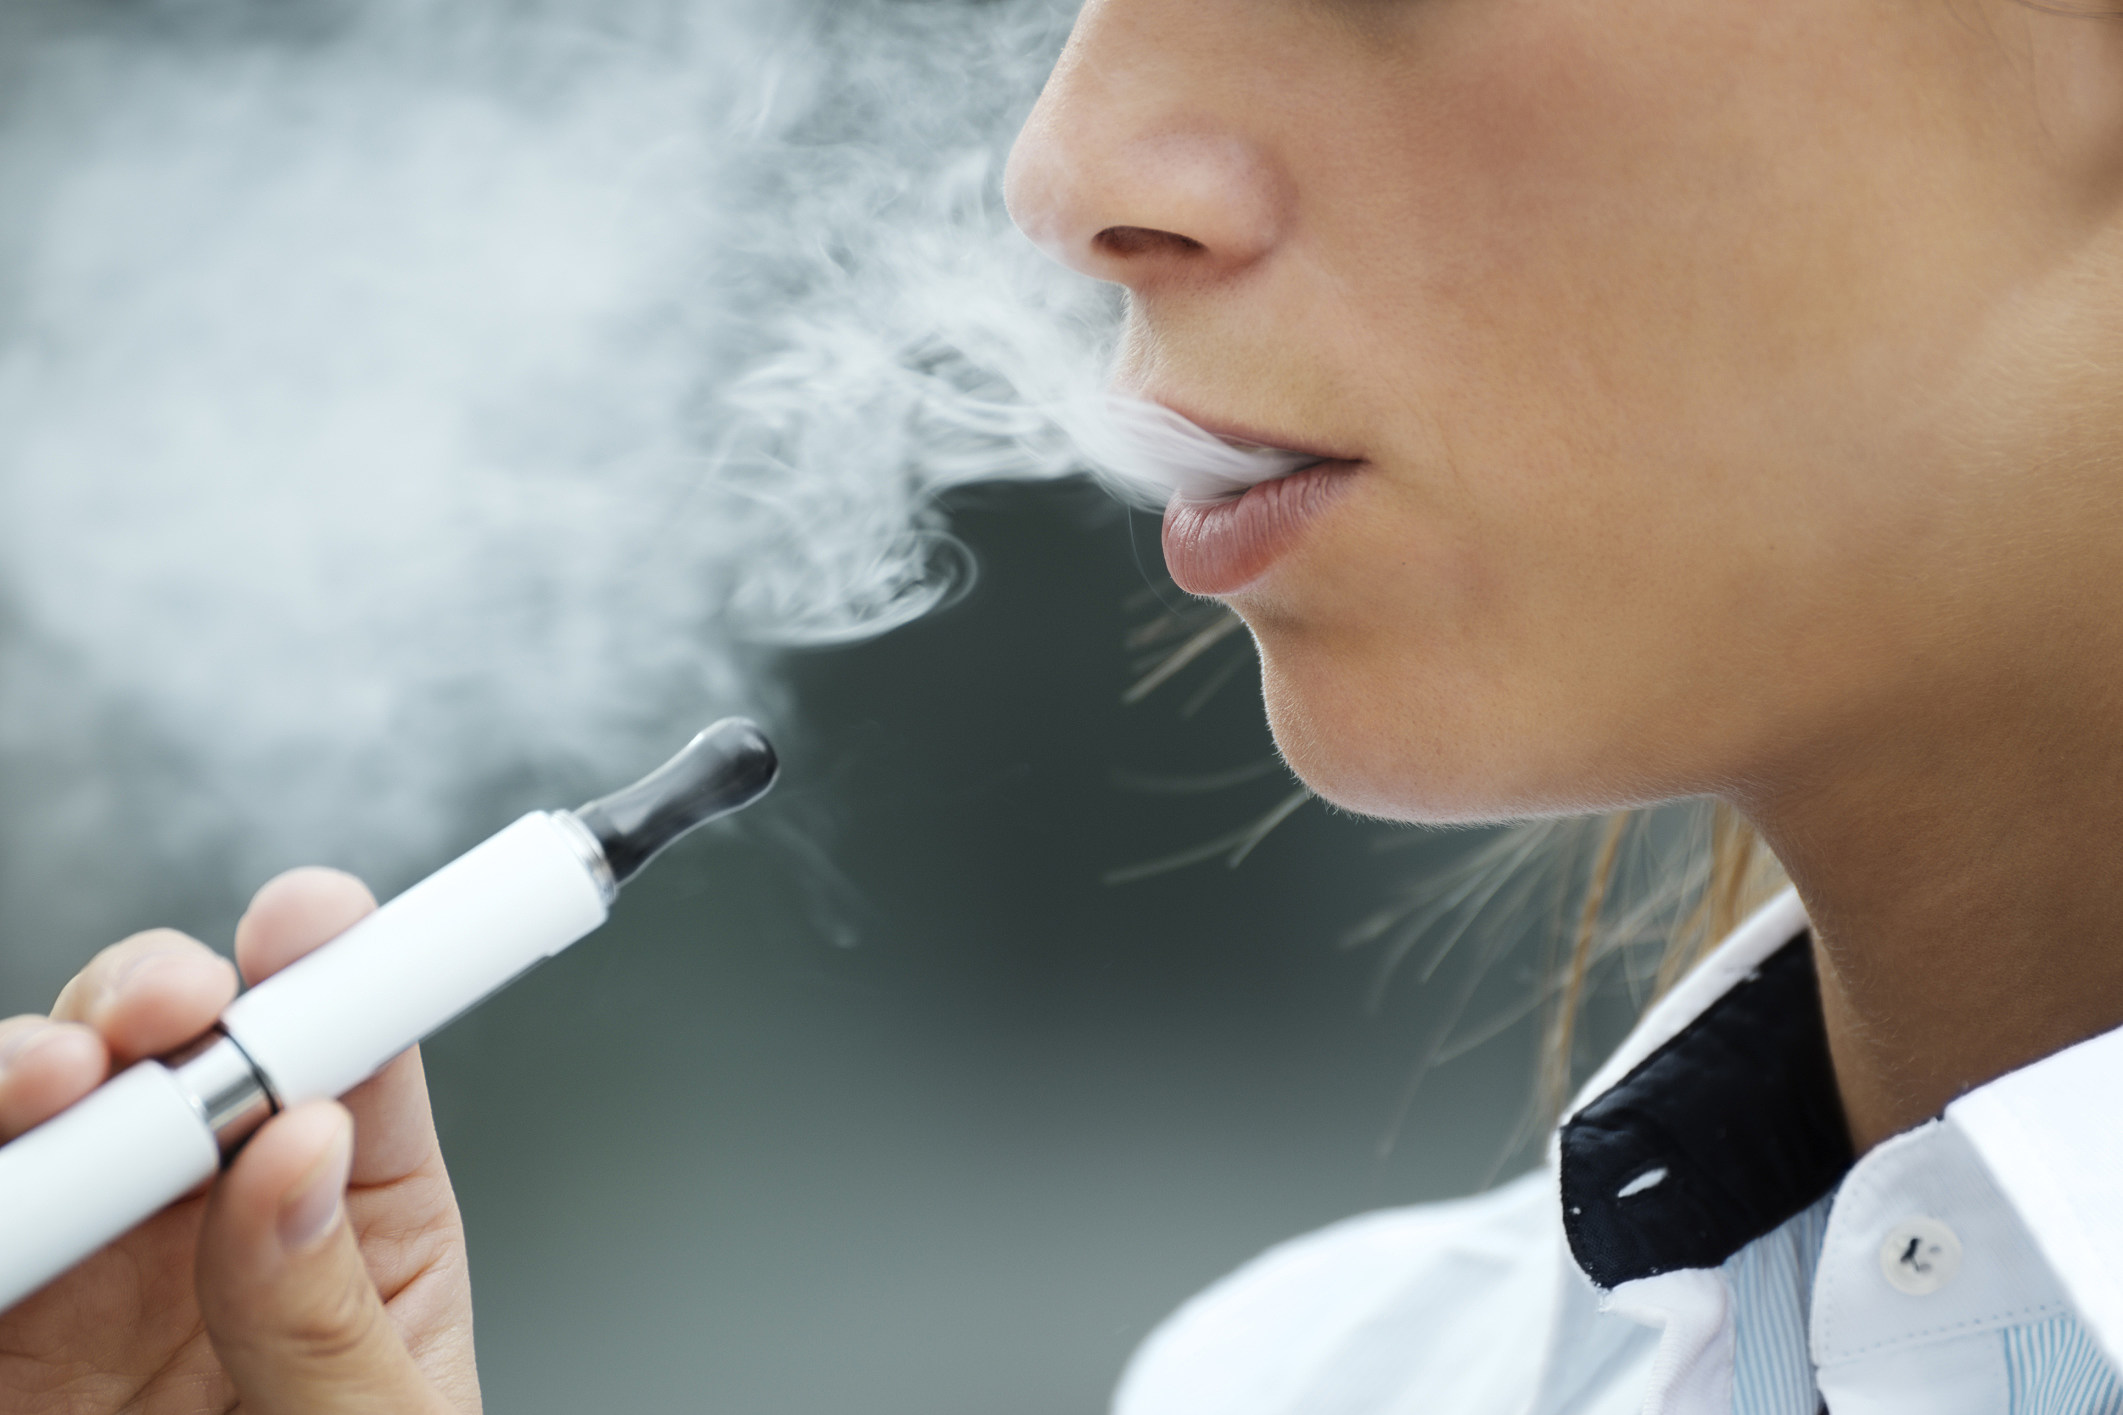 Drug-laced cartridges: Another vaping concern in NJ